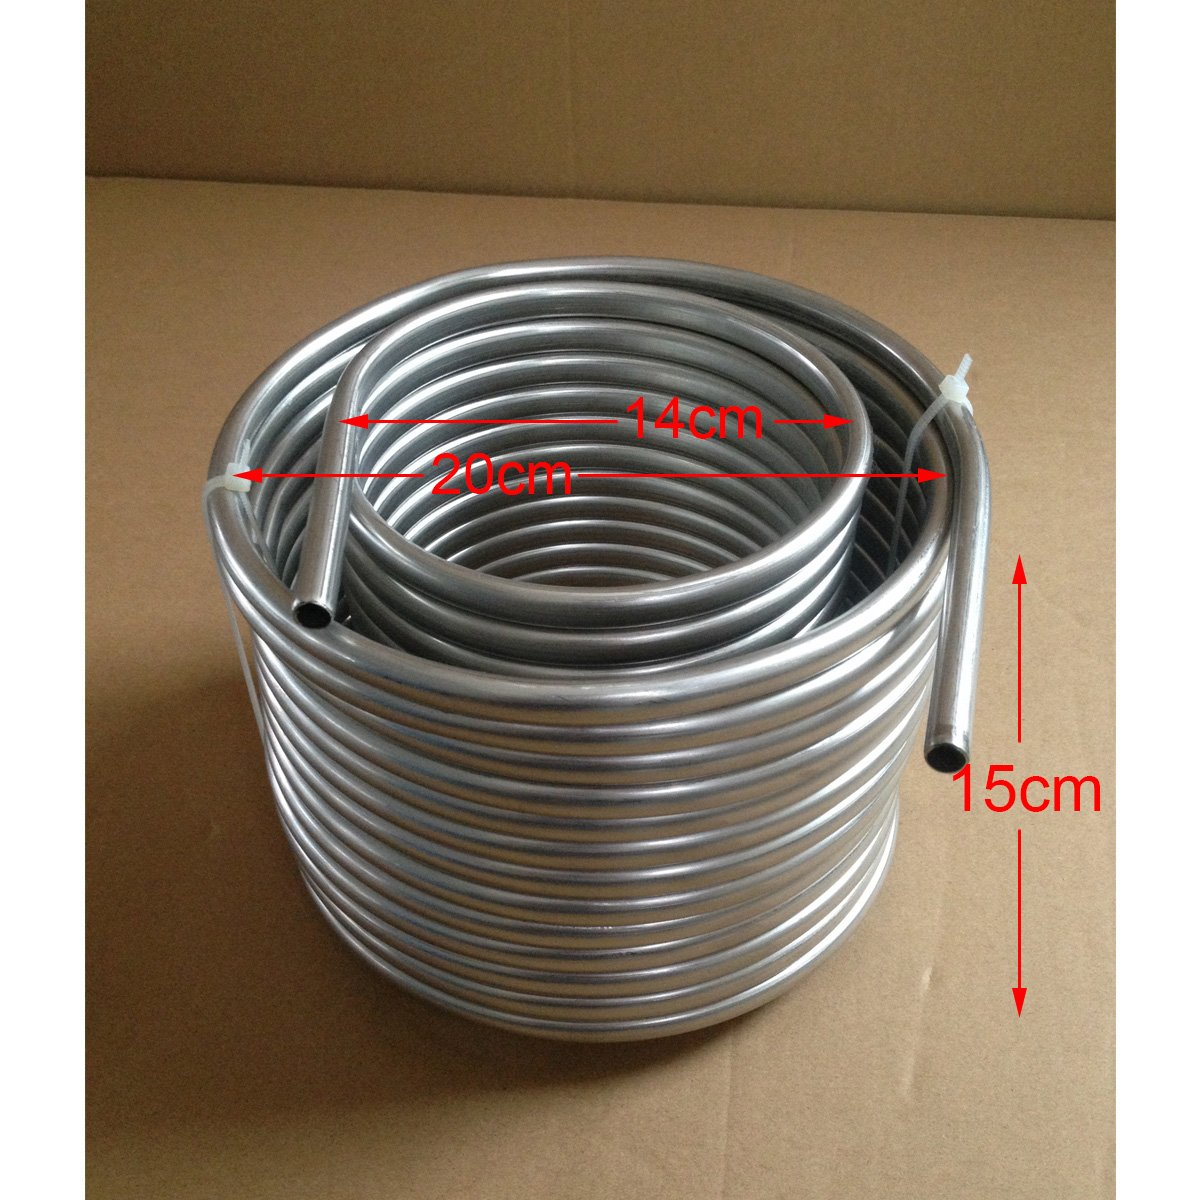 Cooling Coil Pipe, SENREAL Super Efficient Stainless Steel Cooling Coil Home Brewing Wort Chiller Pipe-#1 by SENREAL (Image #8)